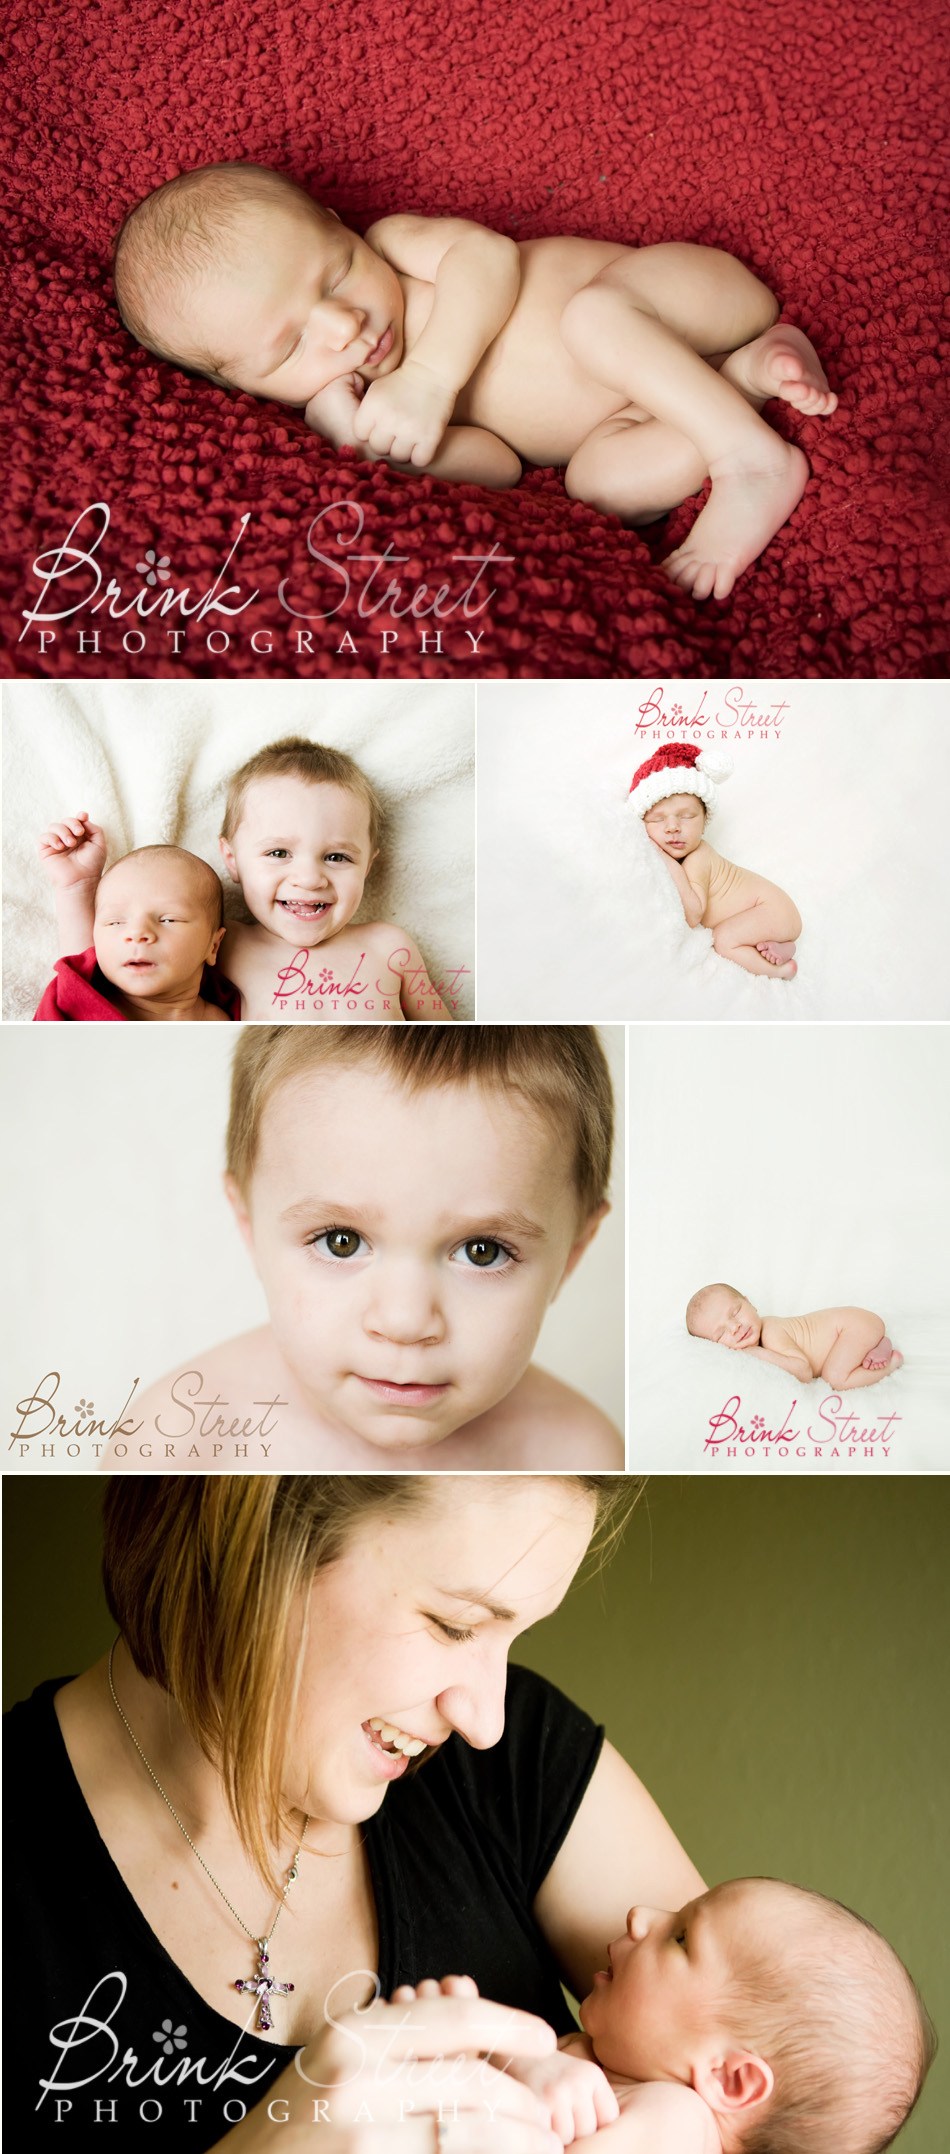 Denver Englewood Newborn Photographer